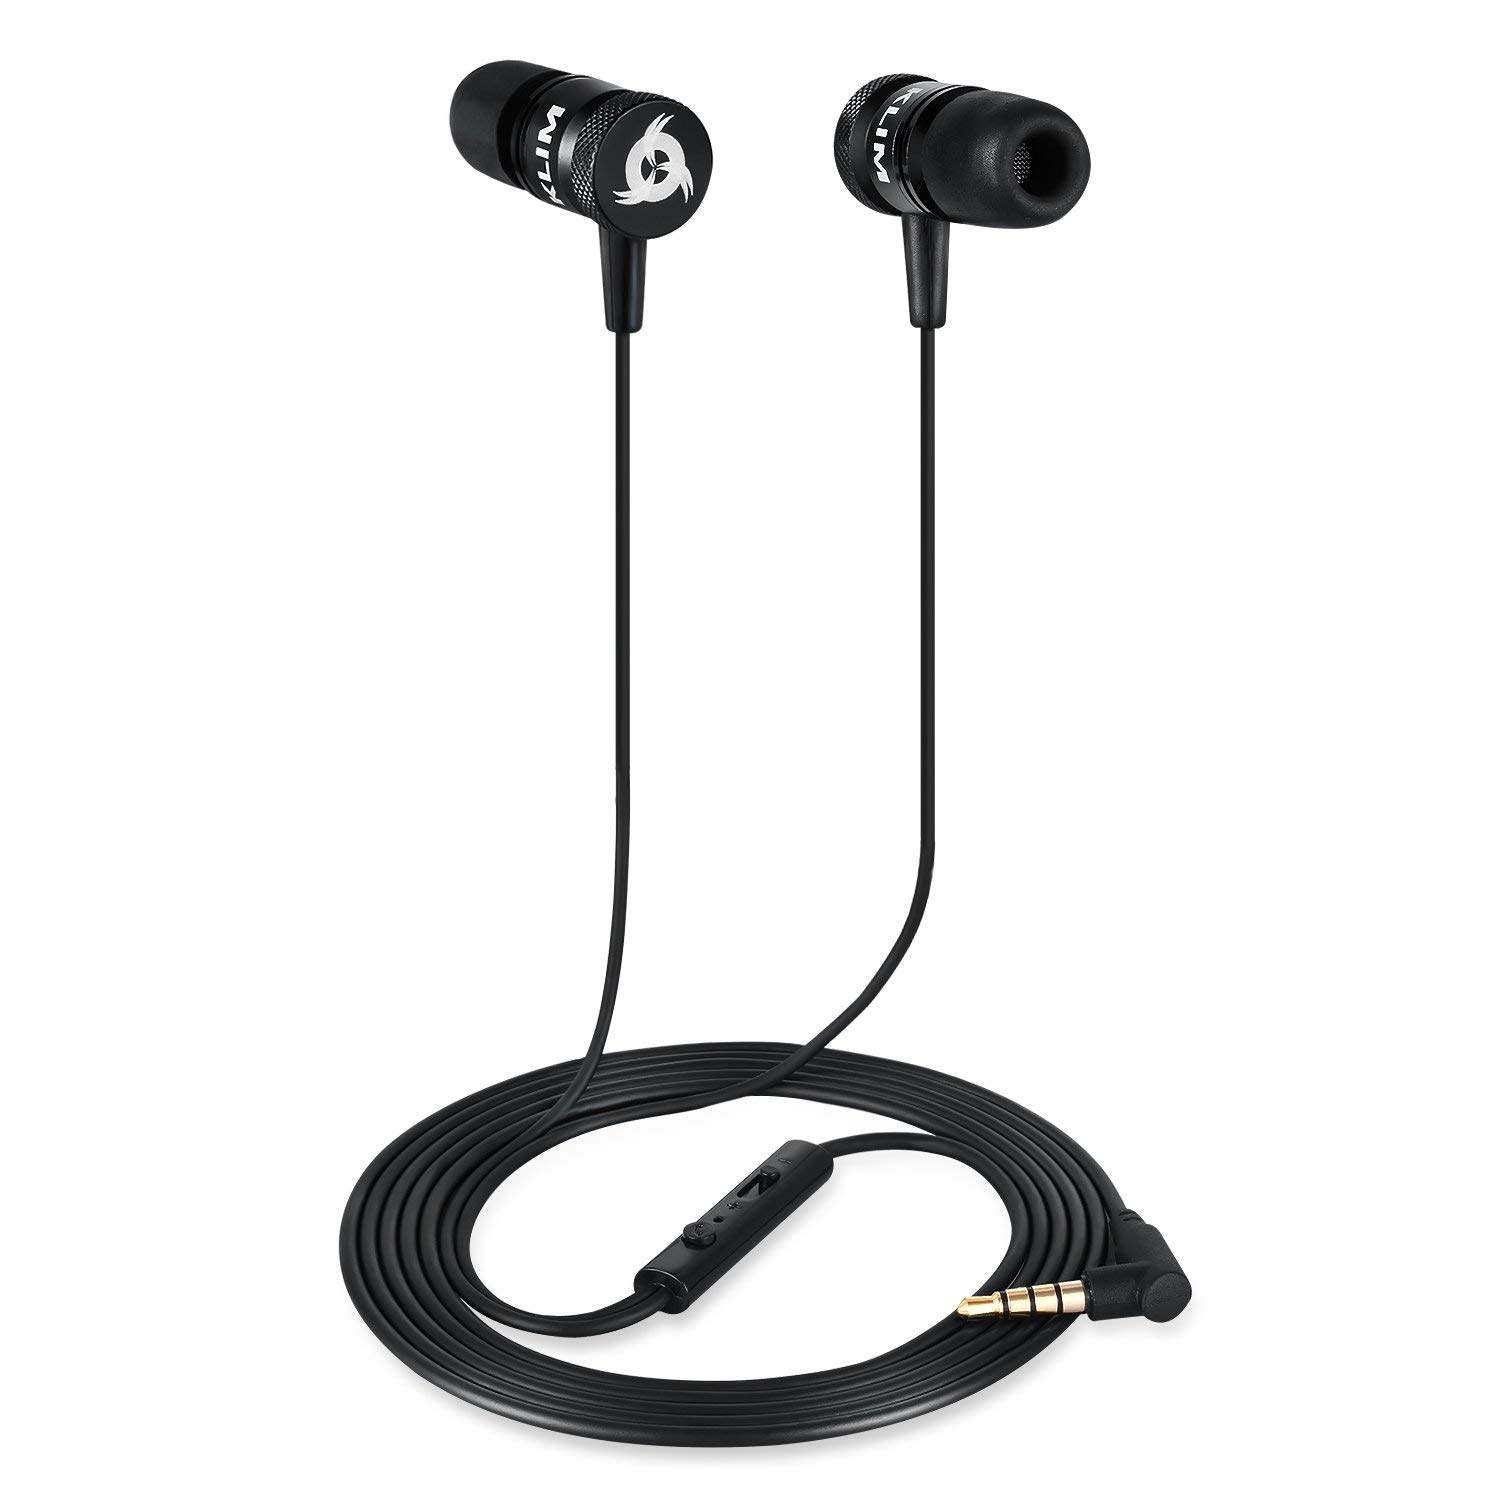 KLIM Fusion Earphones High Quality Audio + 5 years Warranty - Innovative: In-Ear with Memory Foam Red - 3